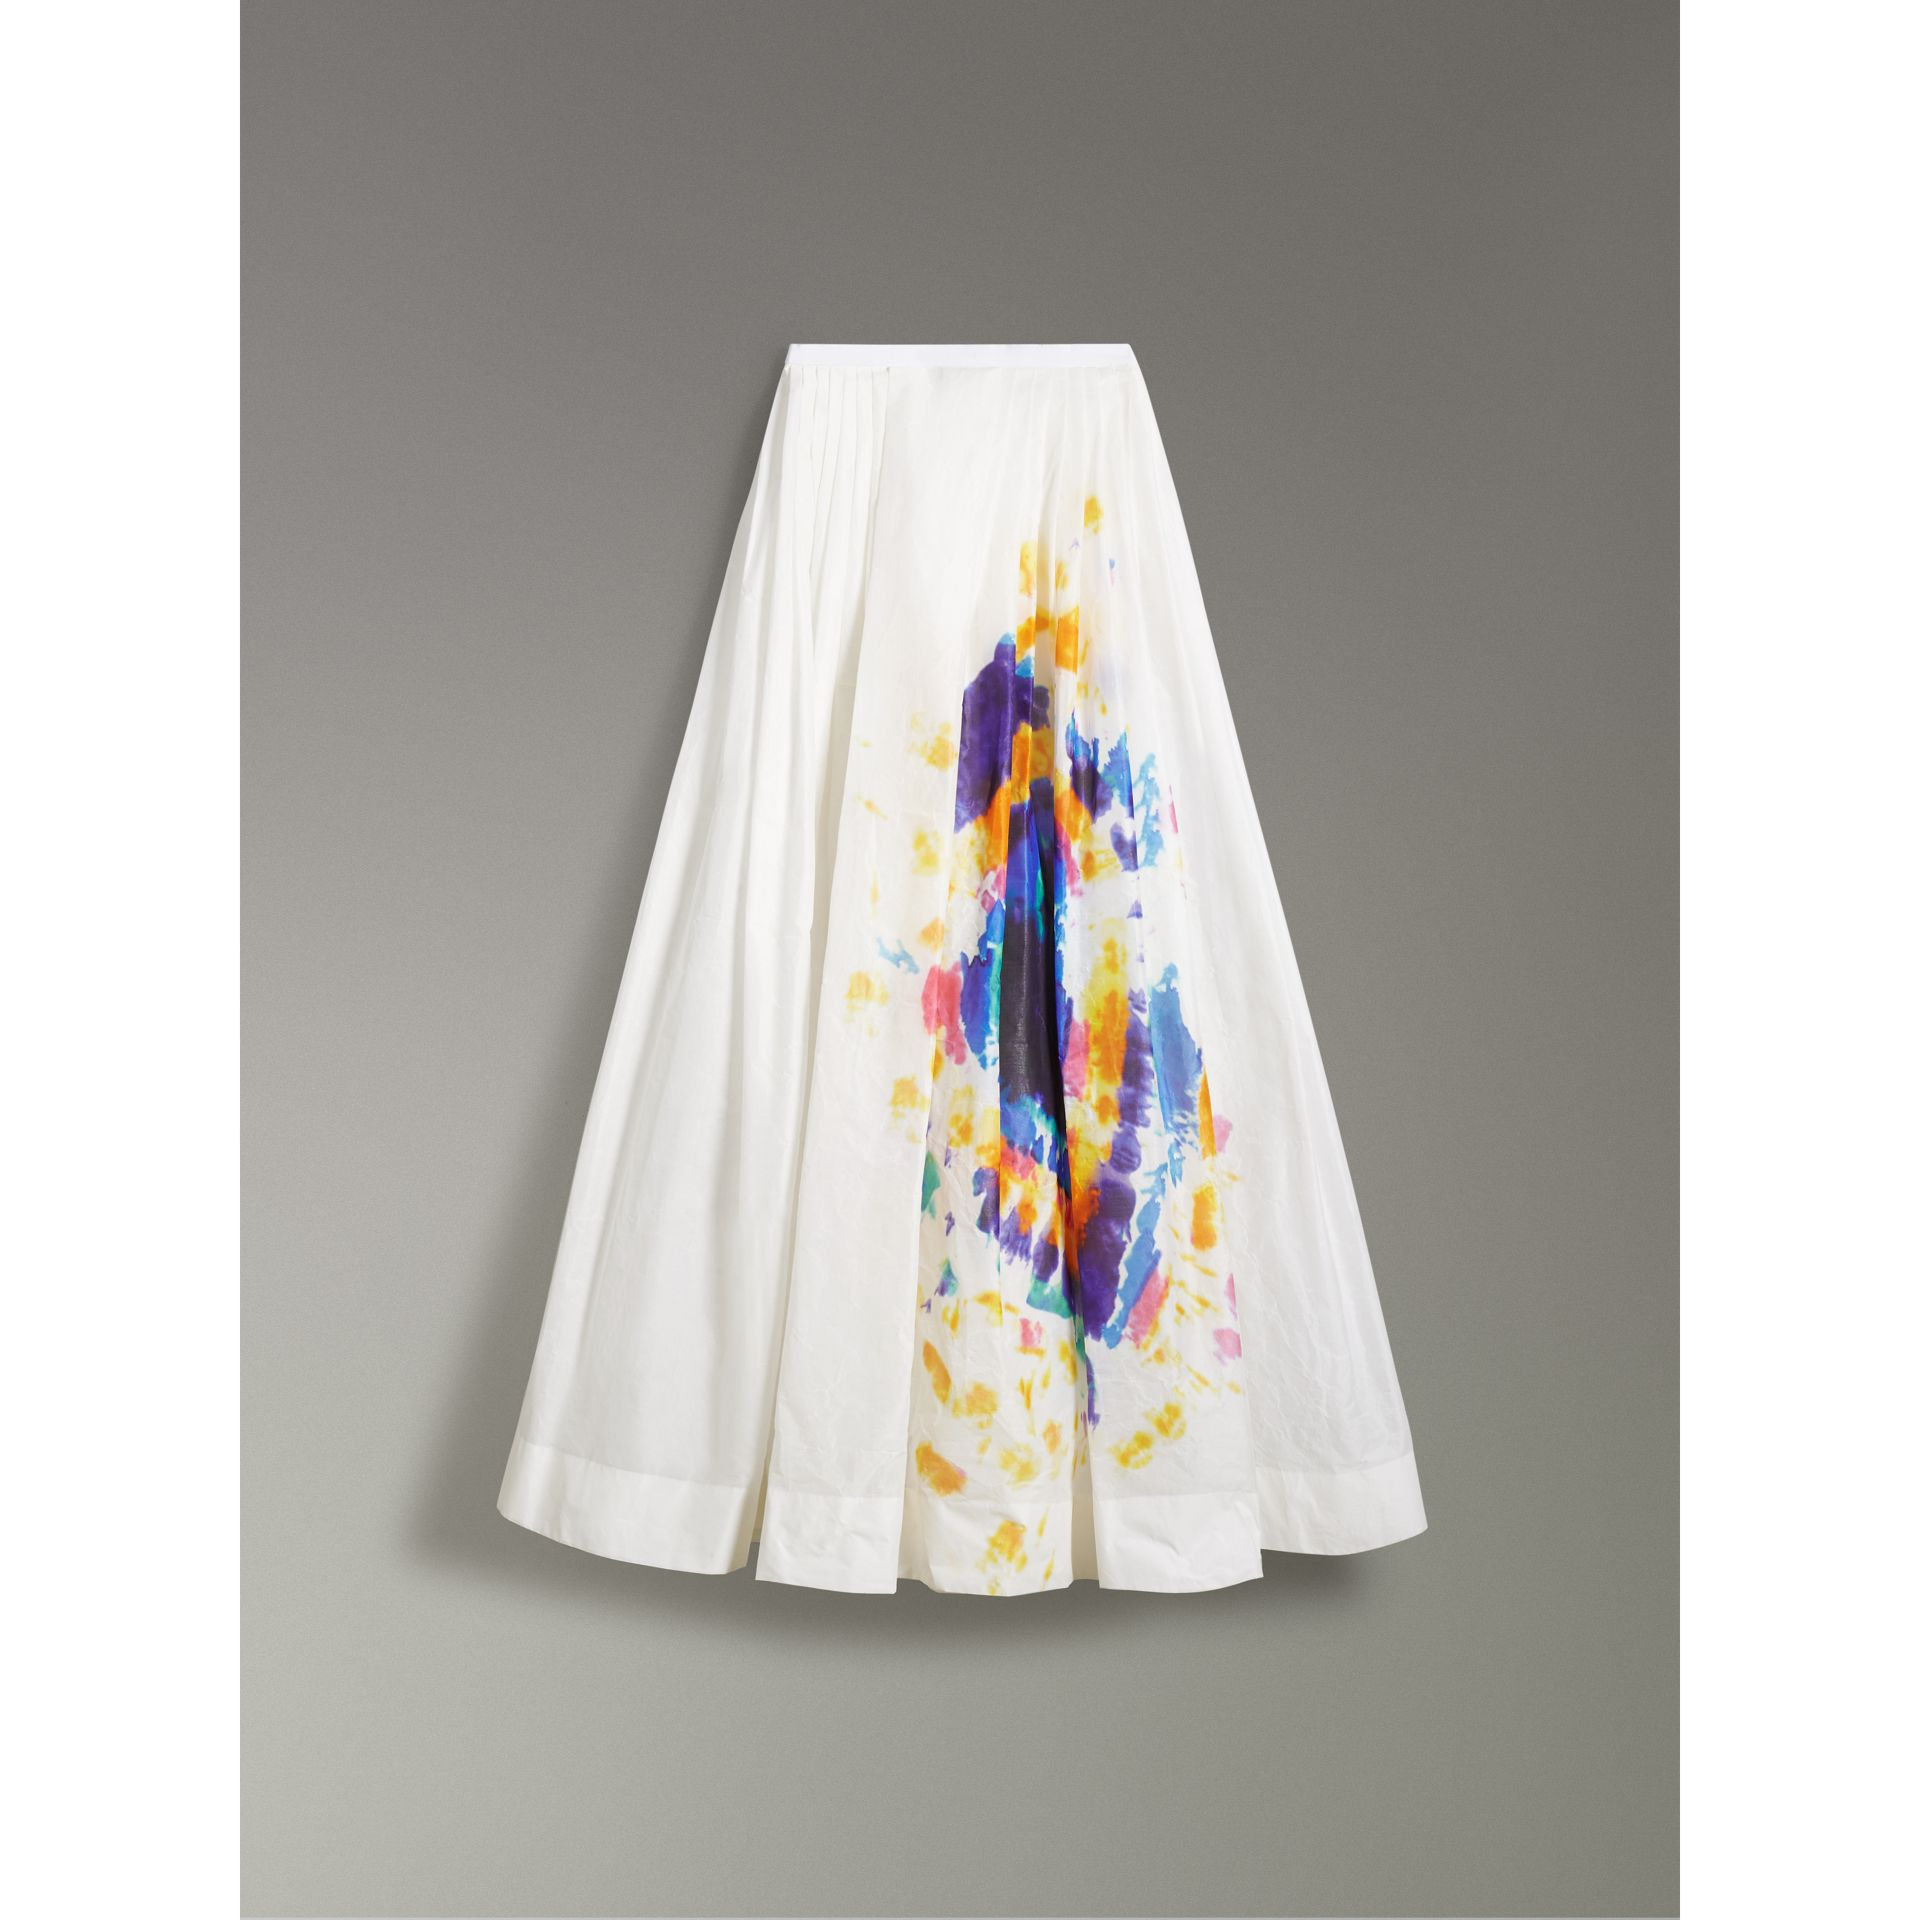 Tie-dye Print Maxi Skirt in Multi-bright Blue - Women | Burberry United Kingdom - gallery image 3